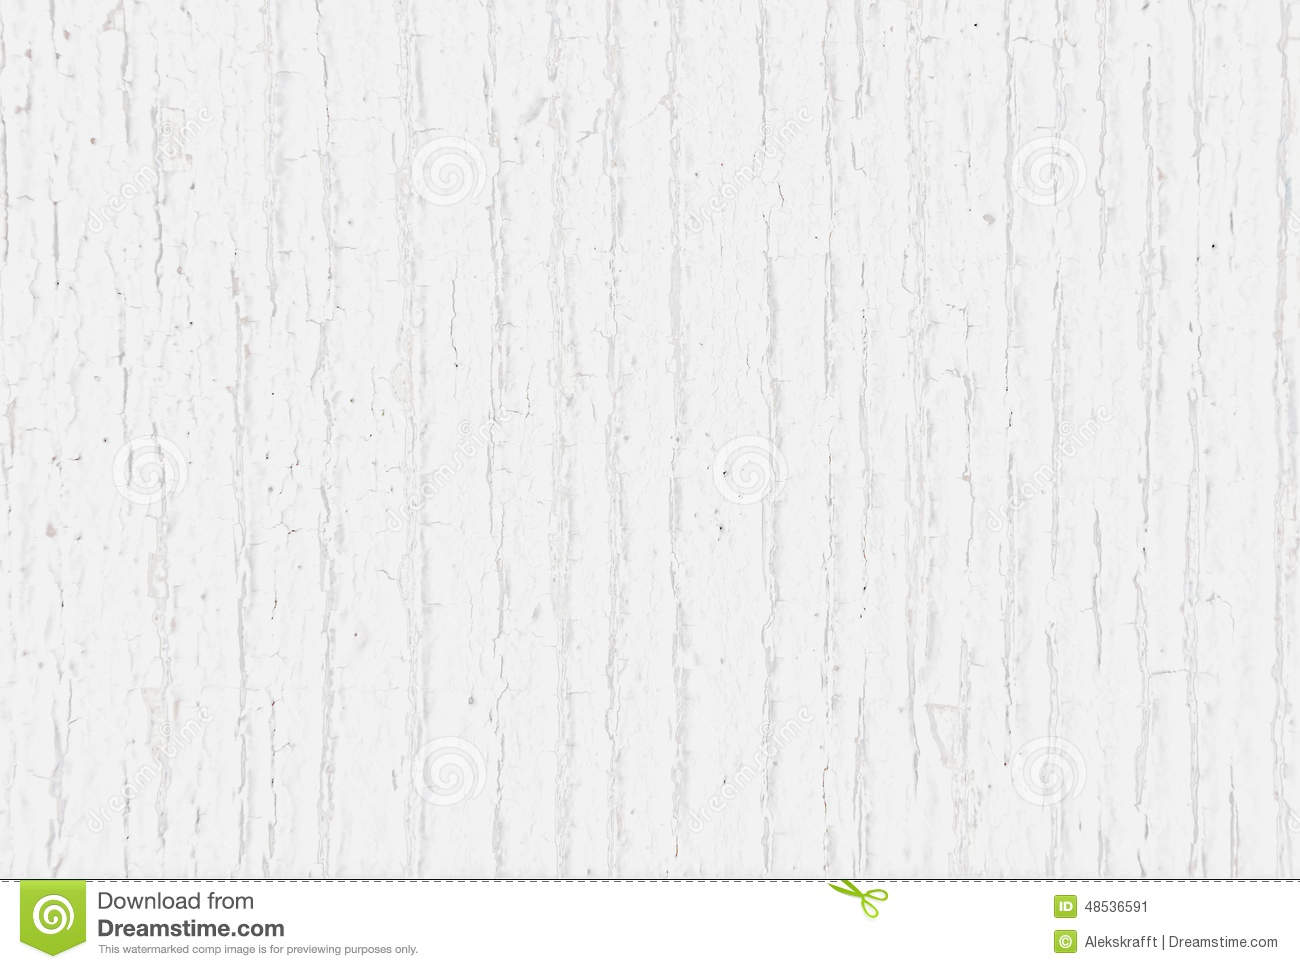 Background Texture Of Old White Painted Wooden Board Stock